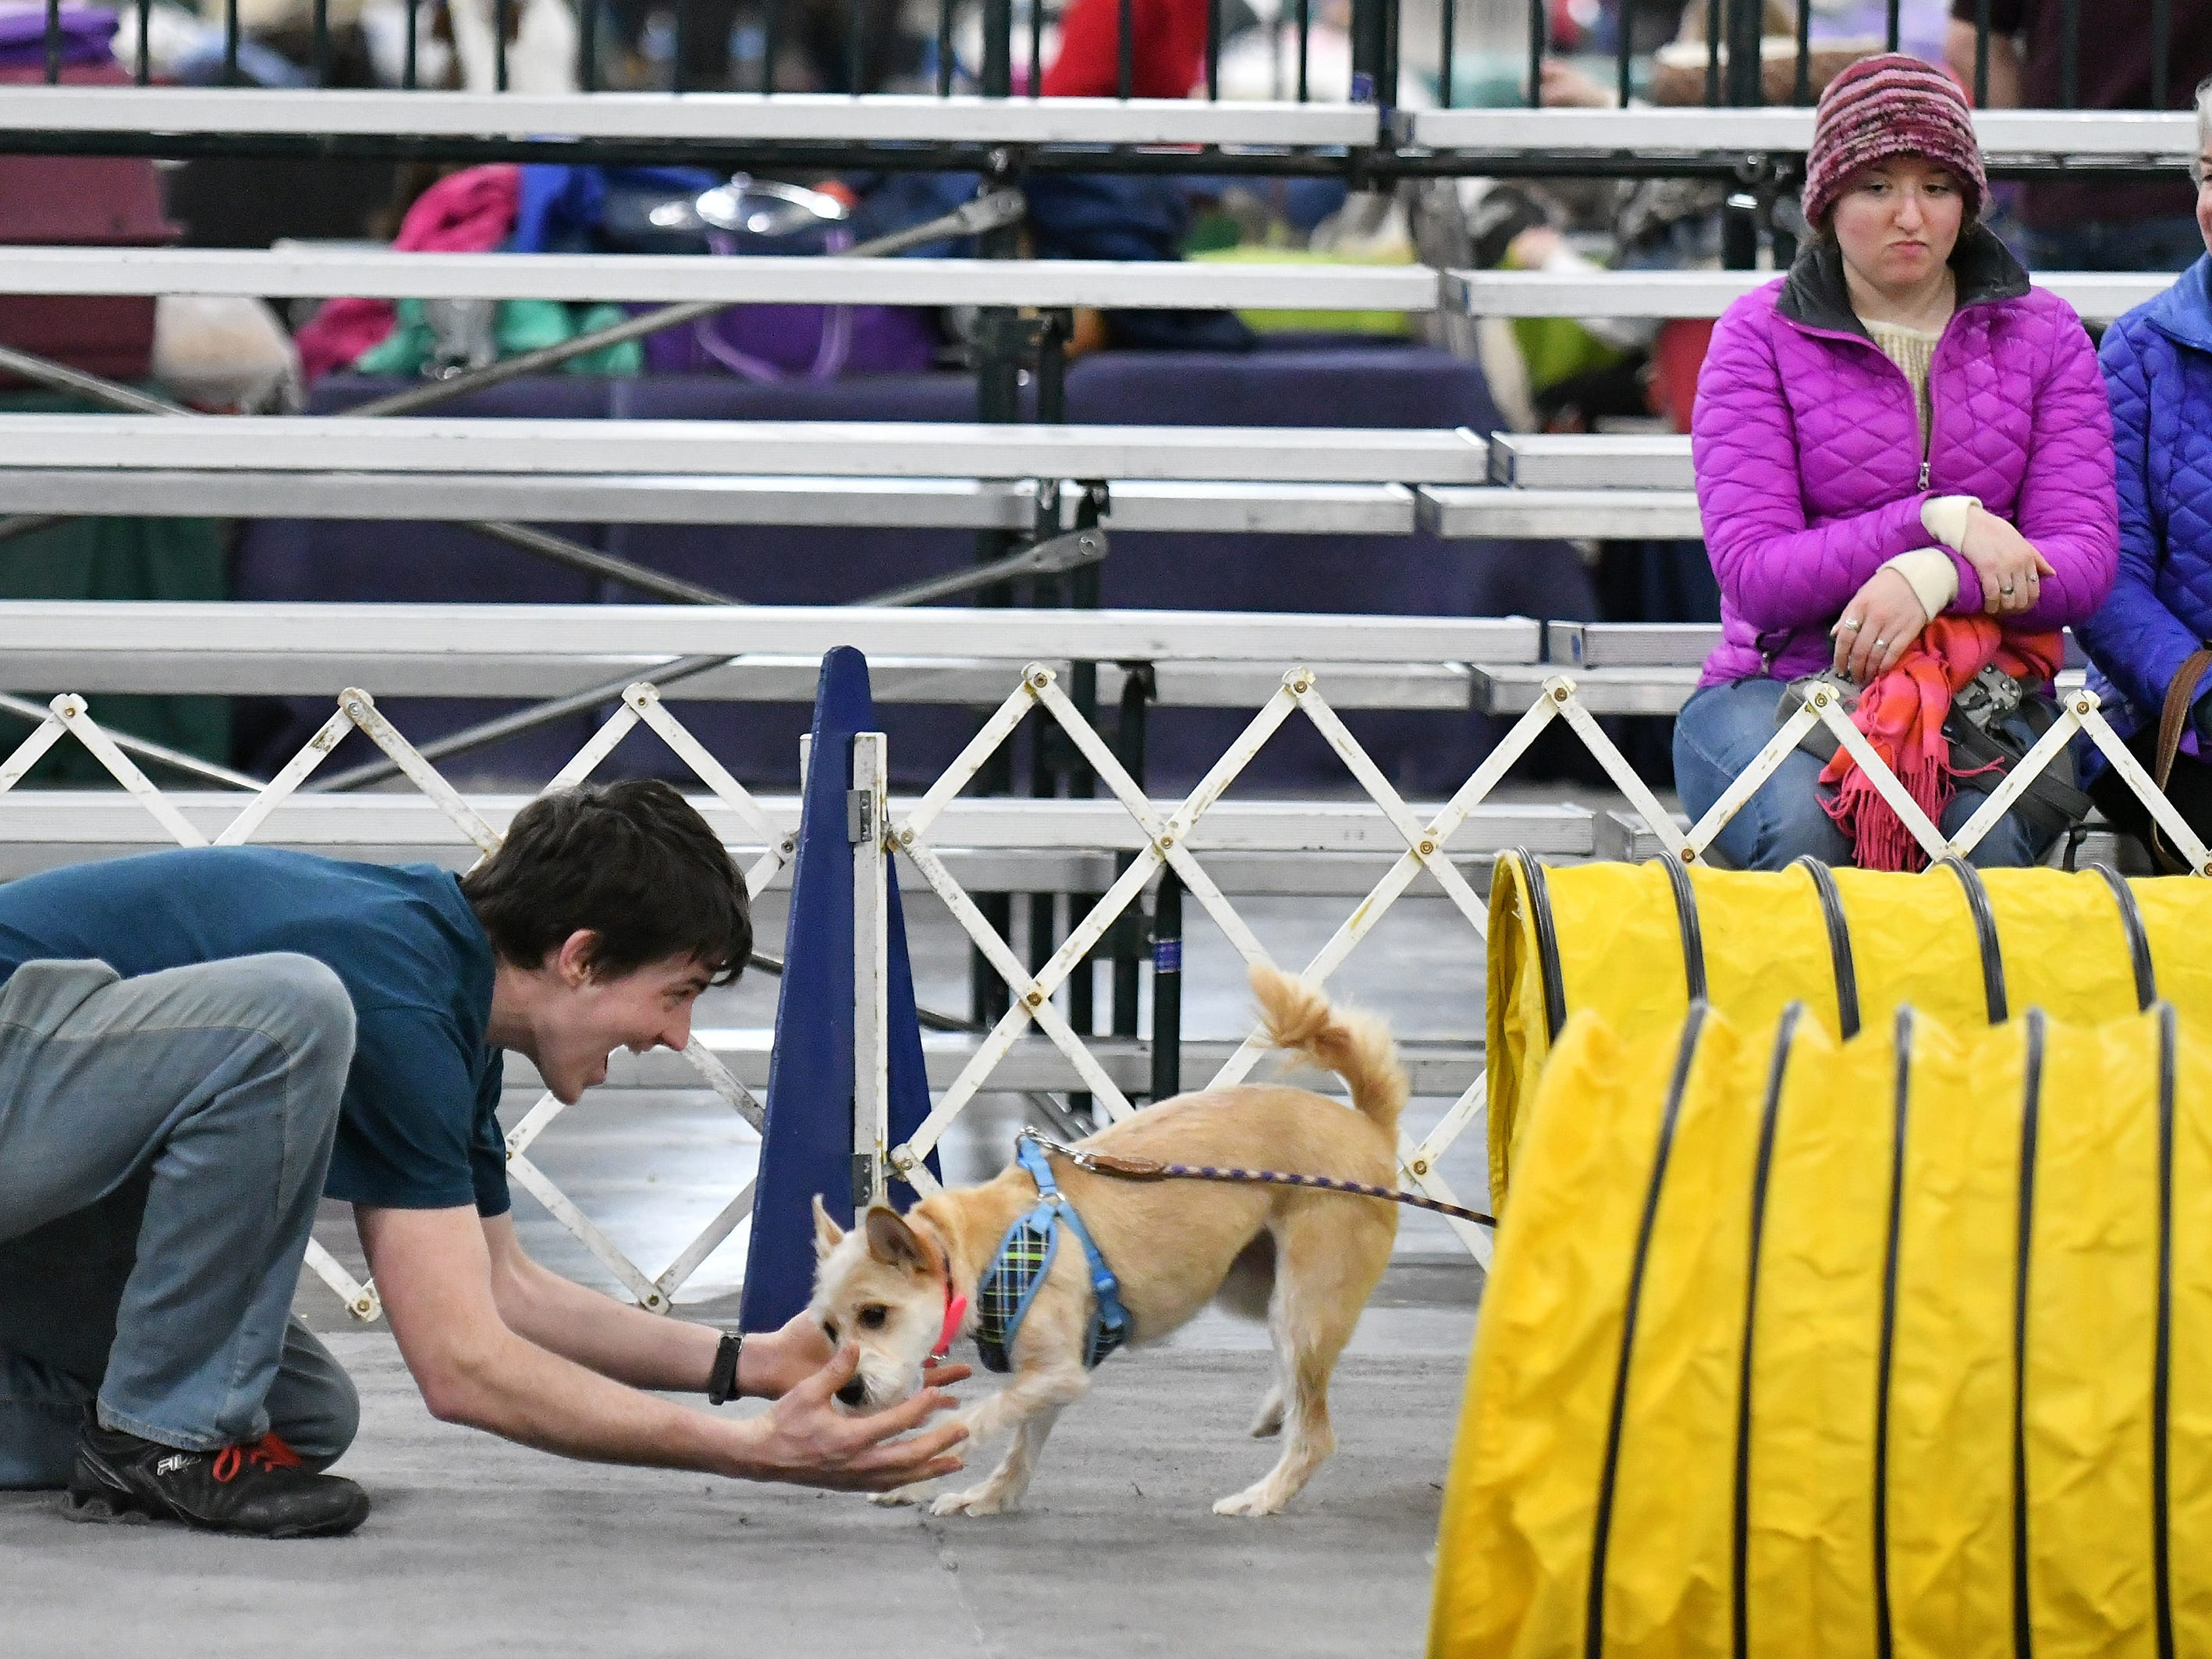 Brad Carothers of Roseville greets his dog, Daisy, after she runs through a tunnel at the agility course called My Dog Can Do That.